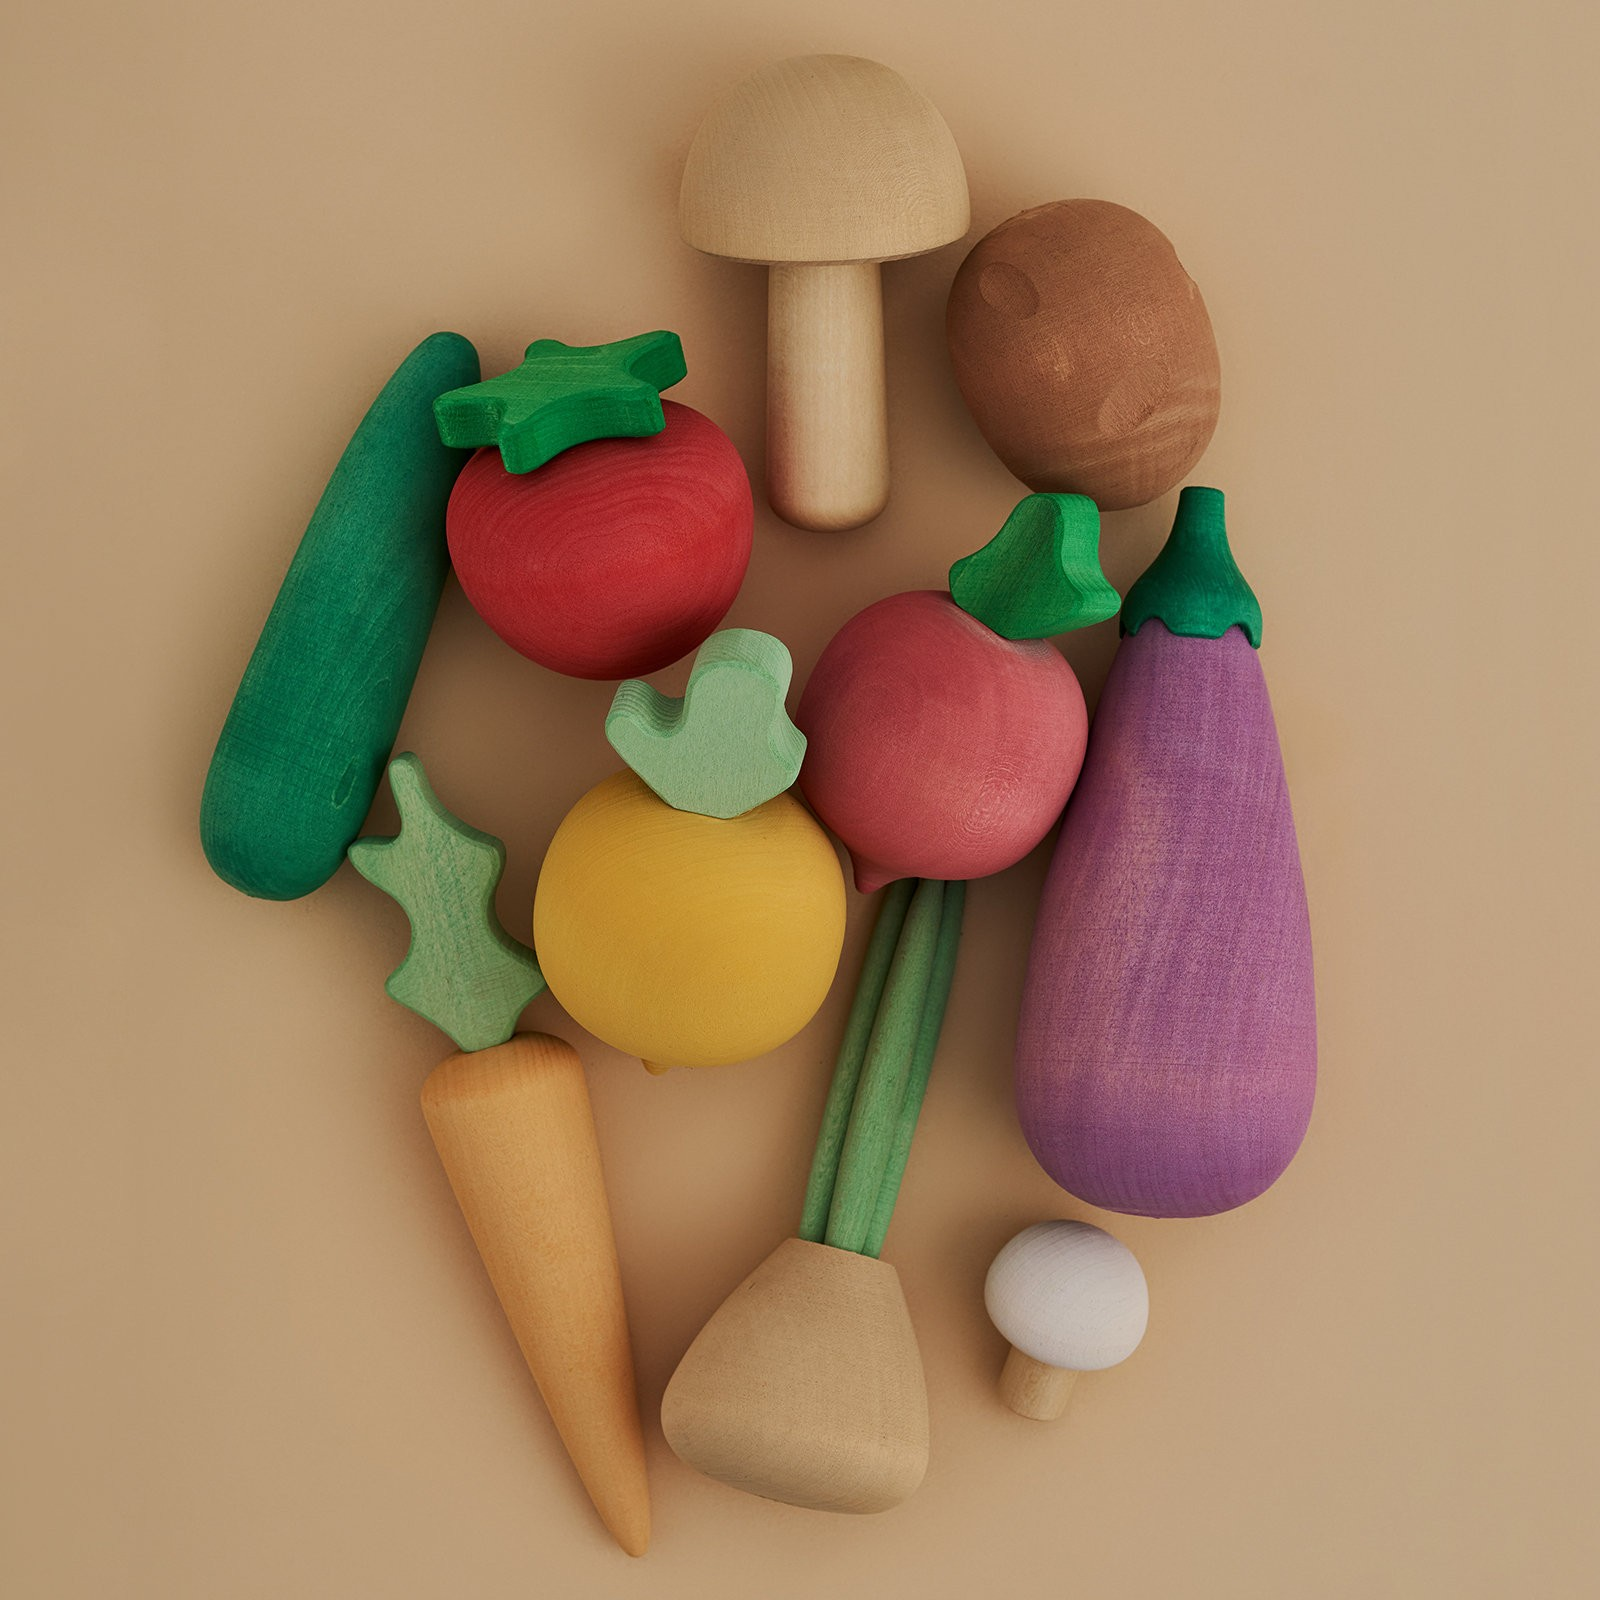 15 Classic wooden toys for children